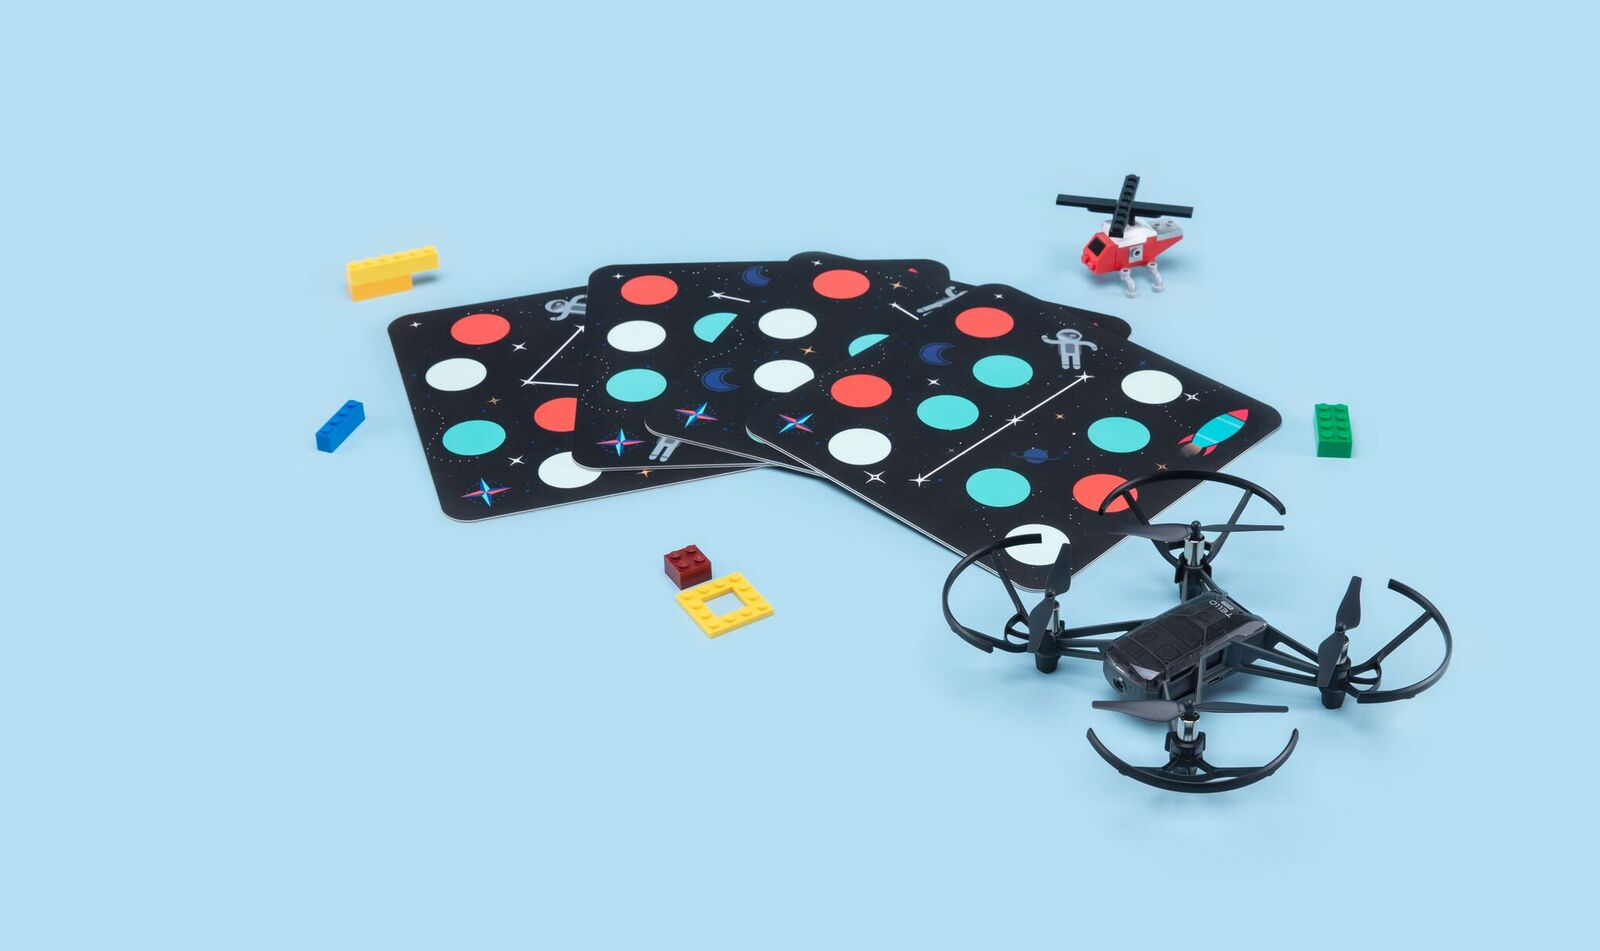 Tello EDU, Take programming your drone to the next level